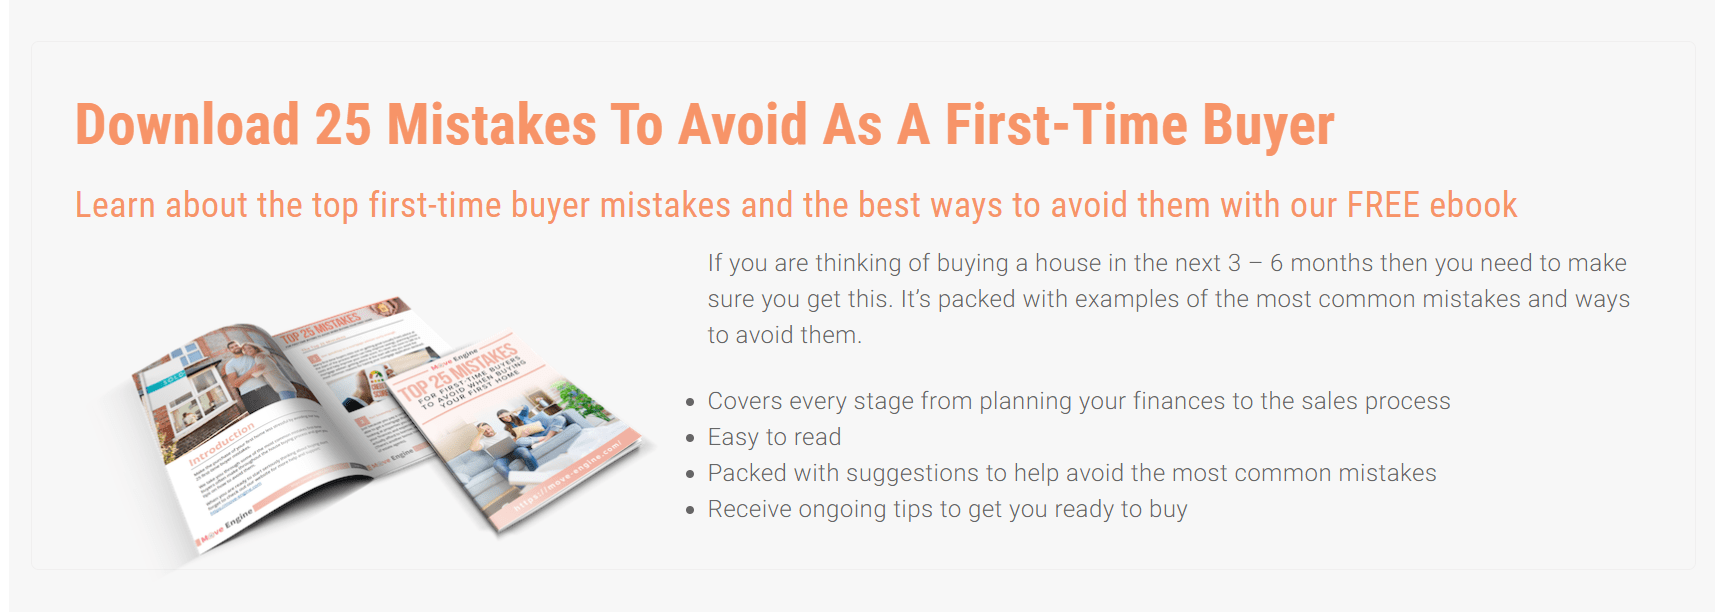 Ebook helping people understand mistakes to avoid in taking on a mortgage and buying their first house